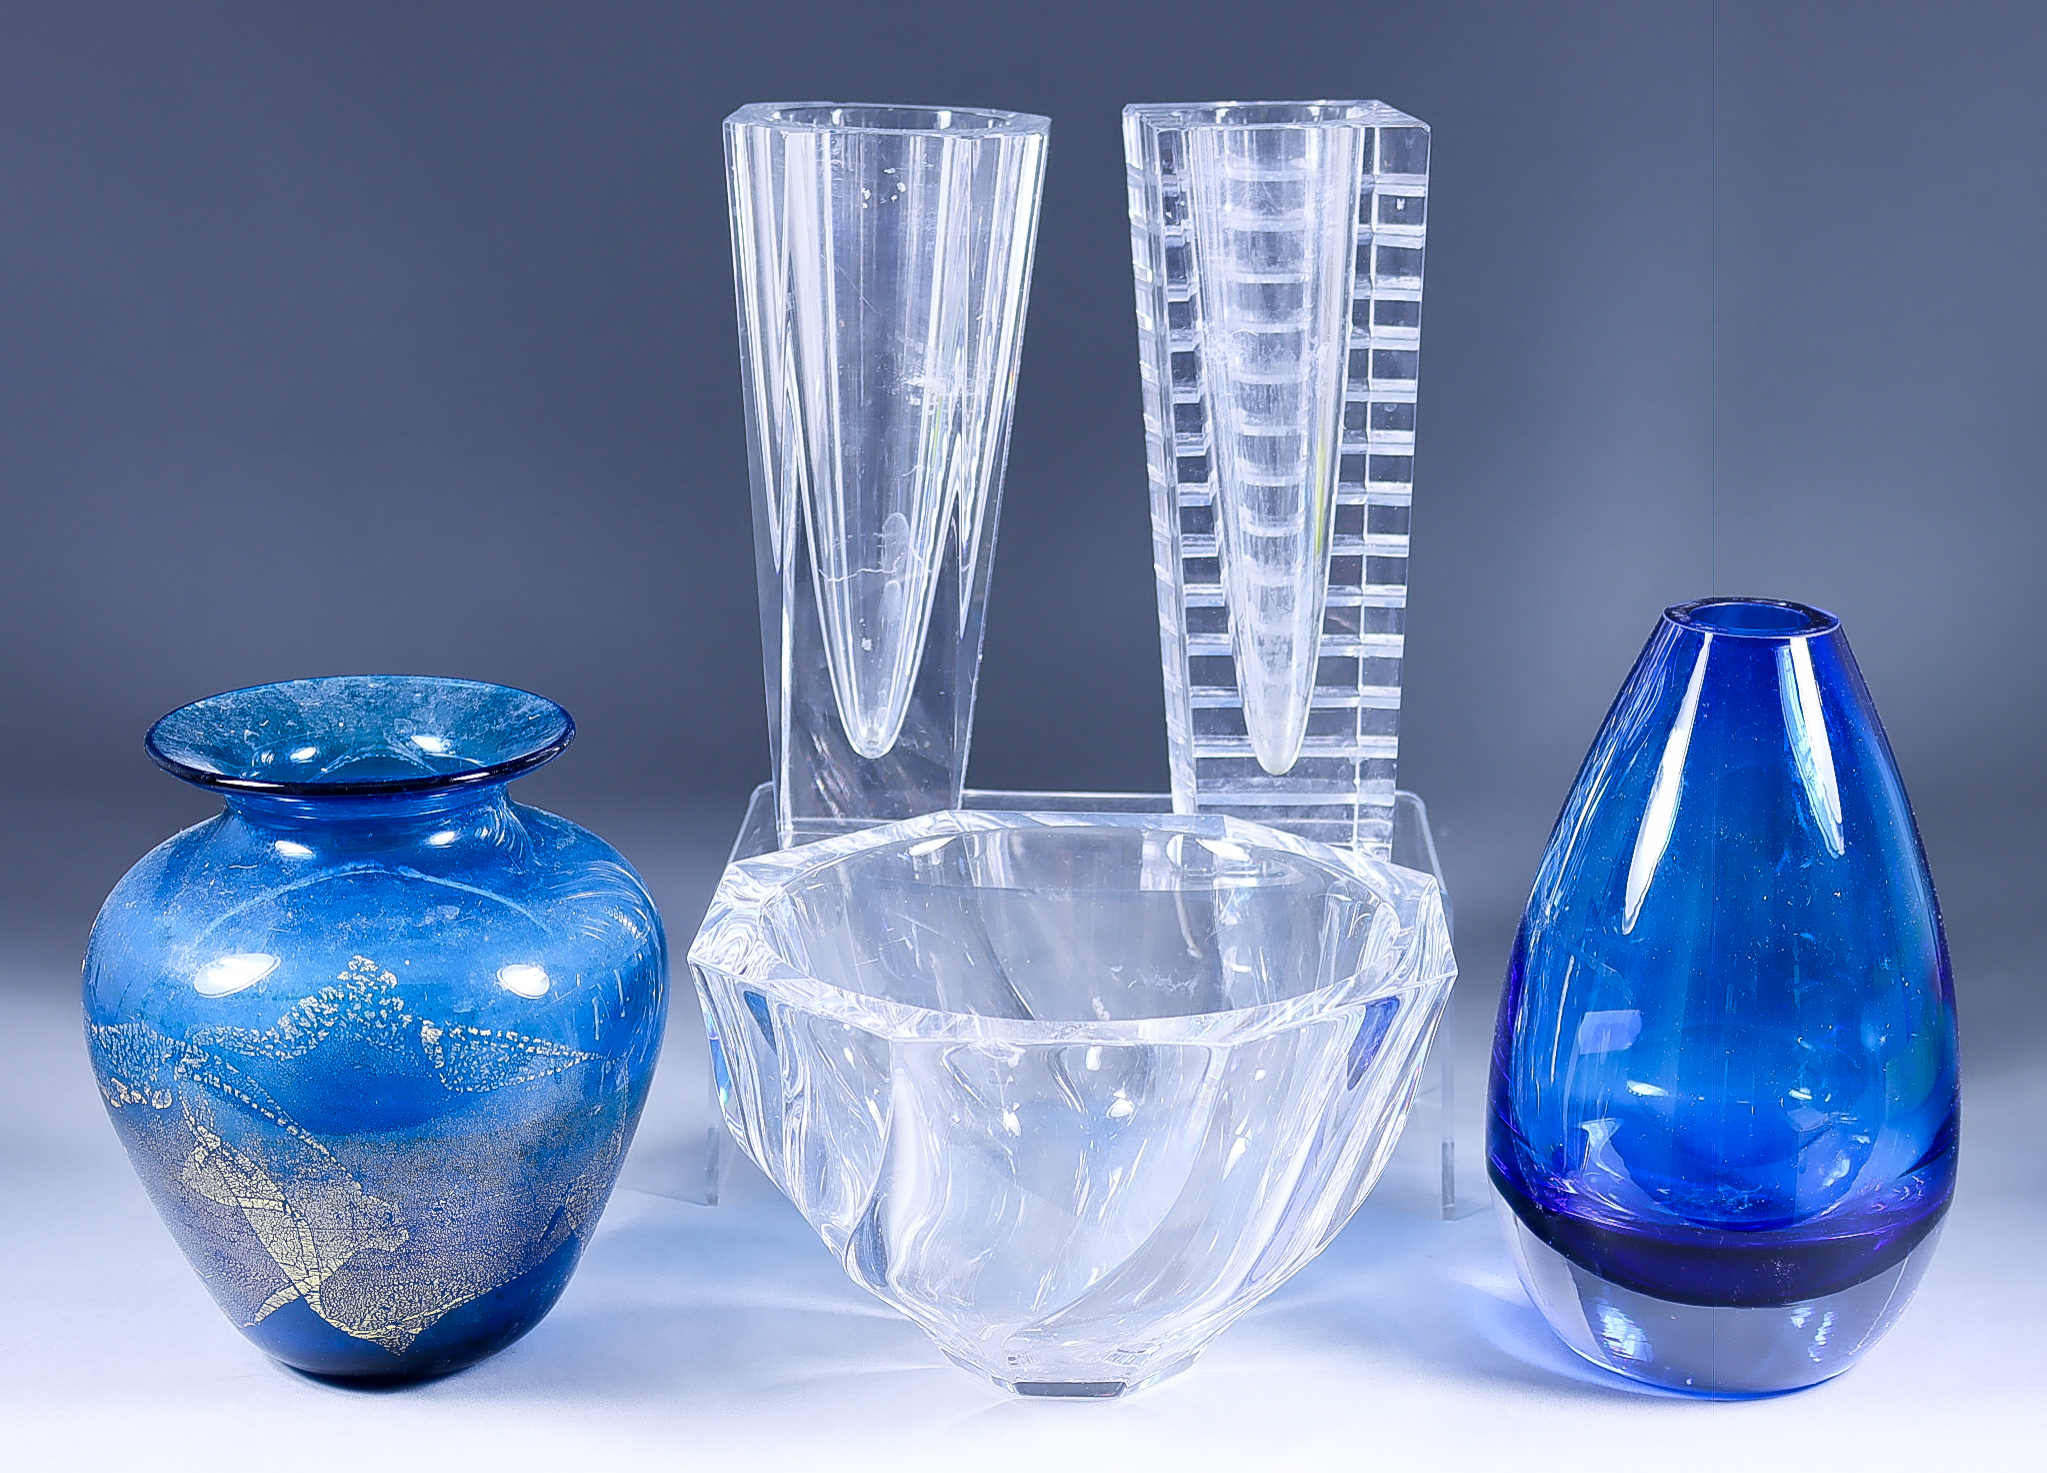 An Orrefors Glass Octagonal Bowl, 7.5ins diameter x 4.75ins high, two Orrefors vases, 8.25ins and